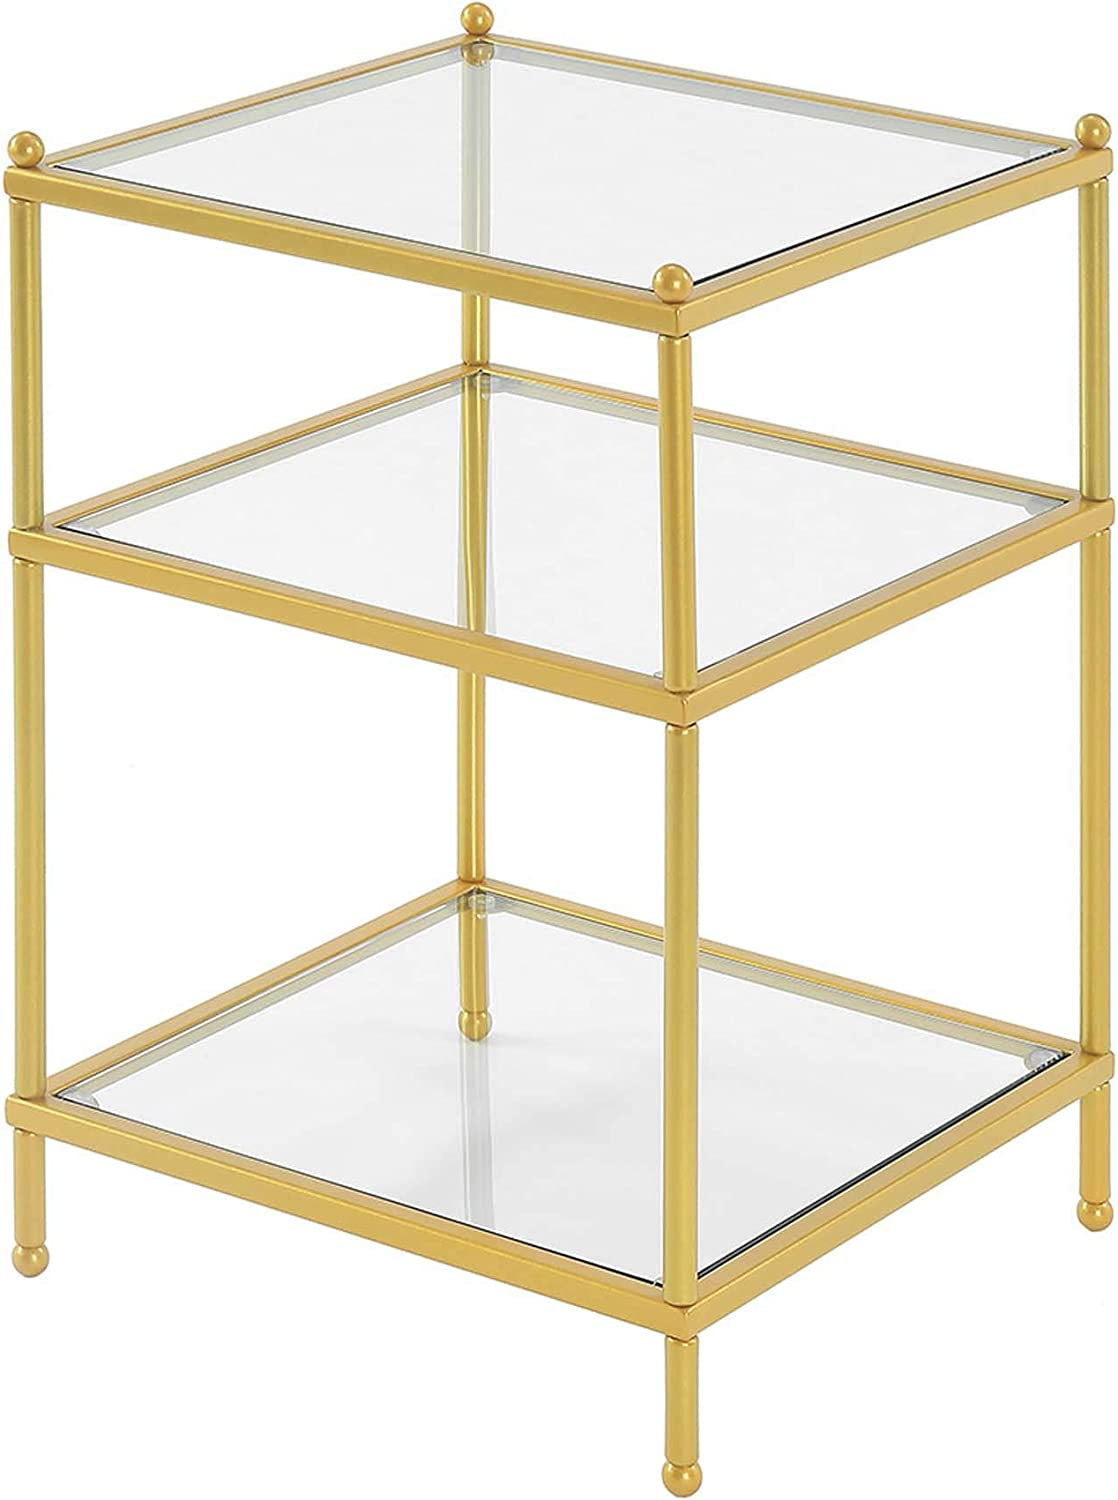 Convenience Concepts Royal Crest End Table, Clear Glass / Gold